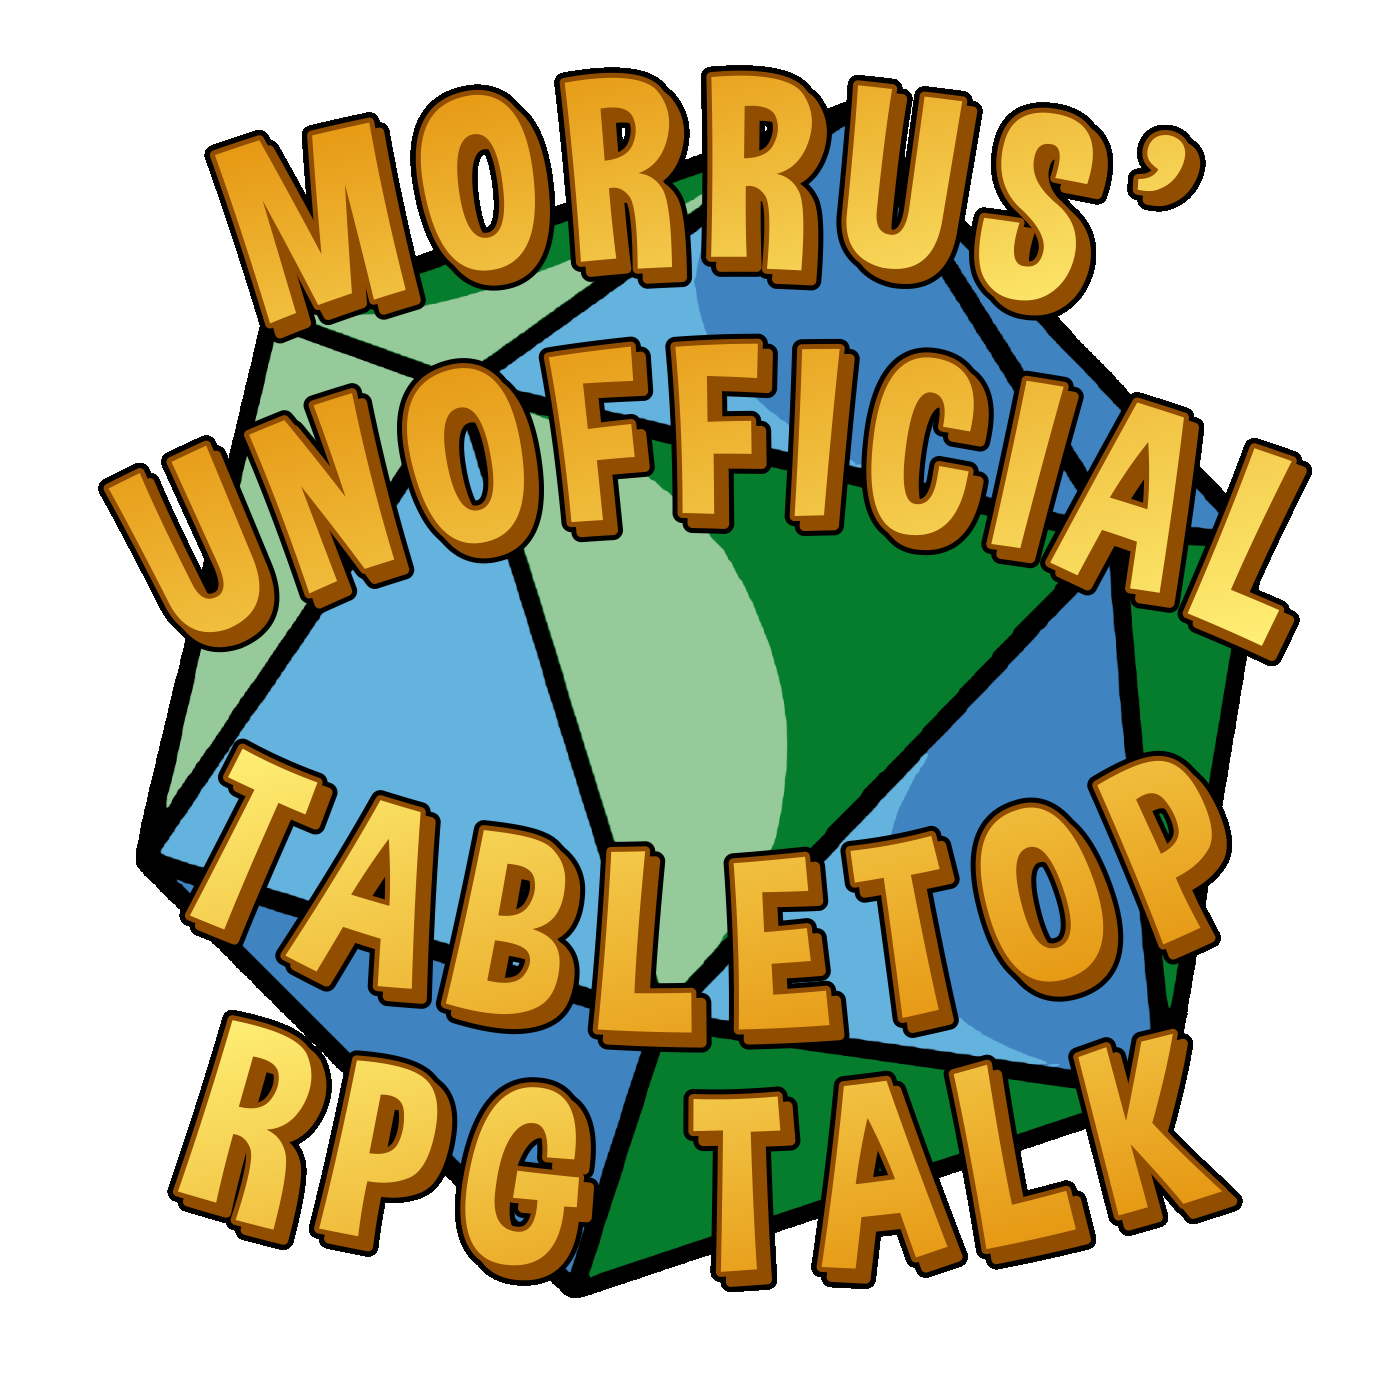 Tabletop rpg clipart clip library stock Morrus\' Unofficial Tabletop RPG Talk clip library stock